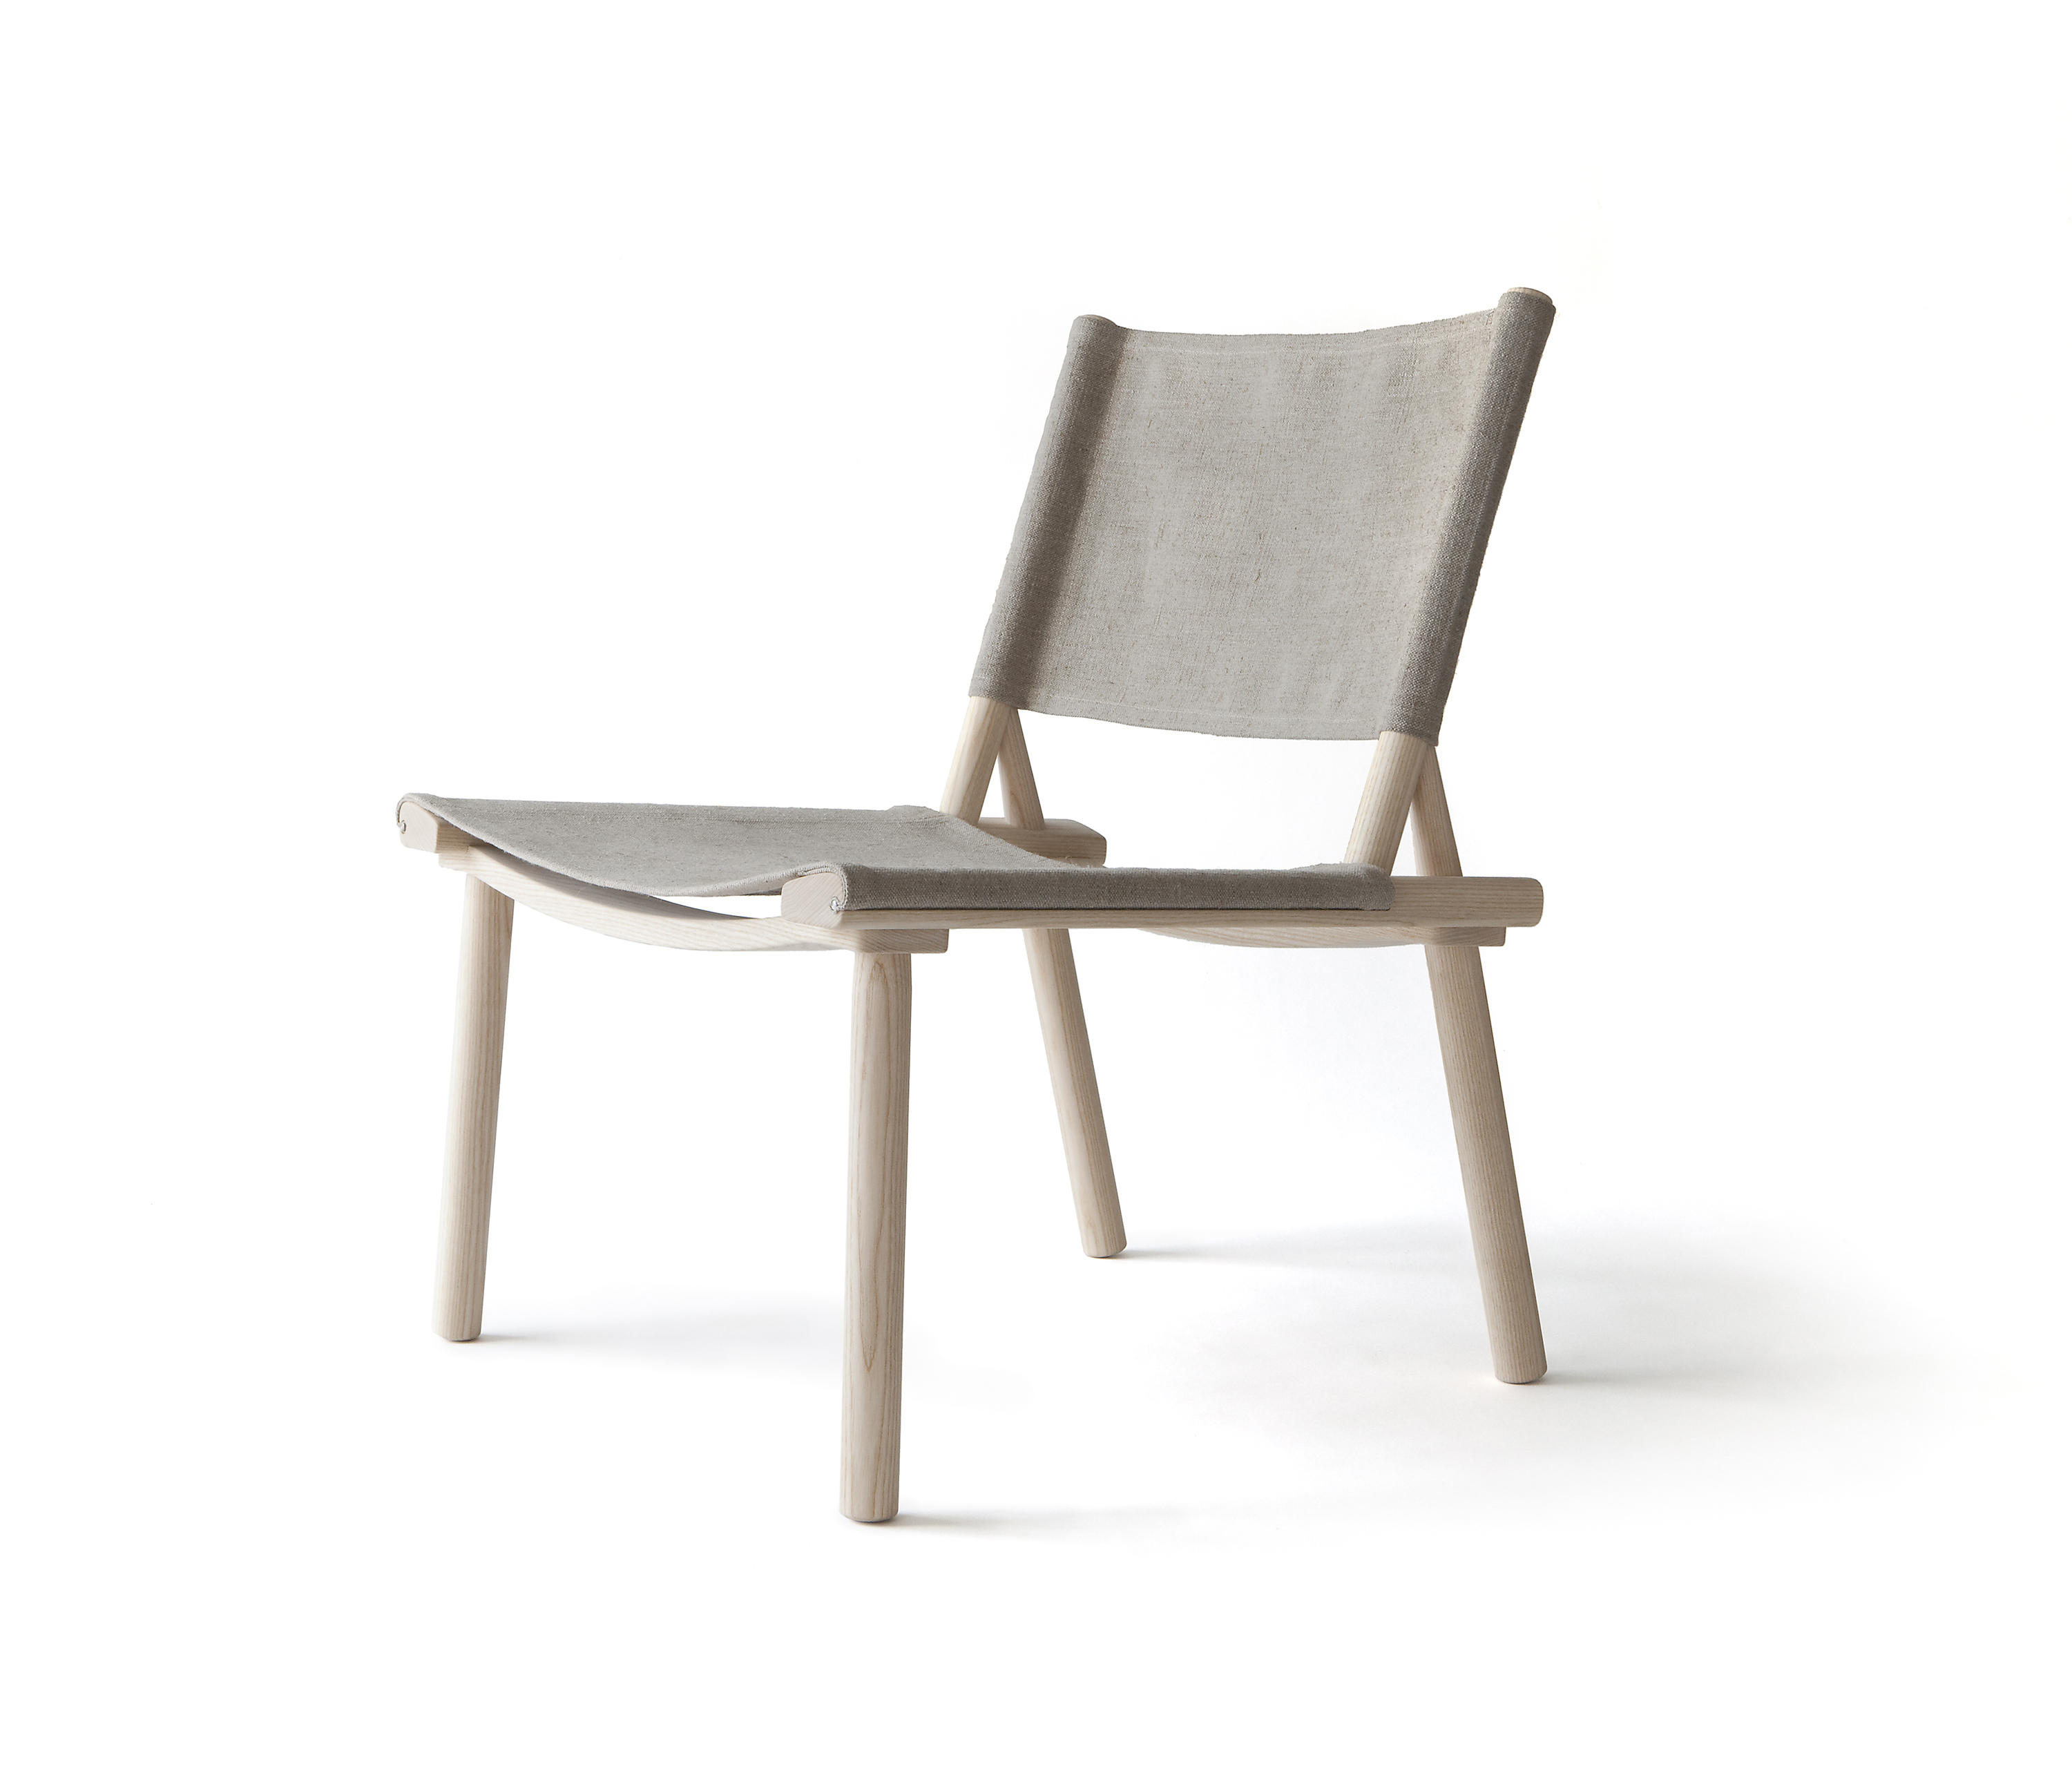 DECEMBER CHAIR Lounge chairs from Nikari